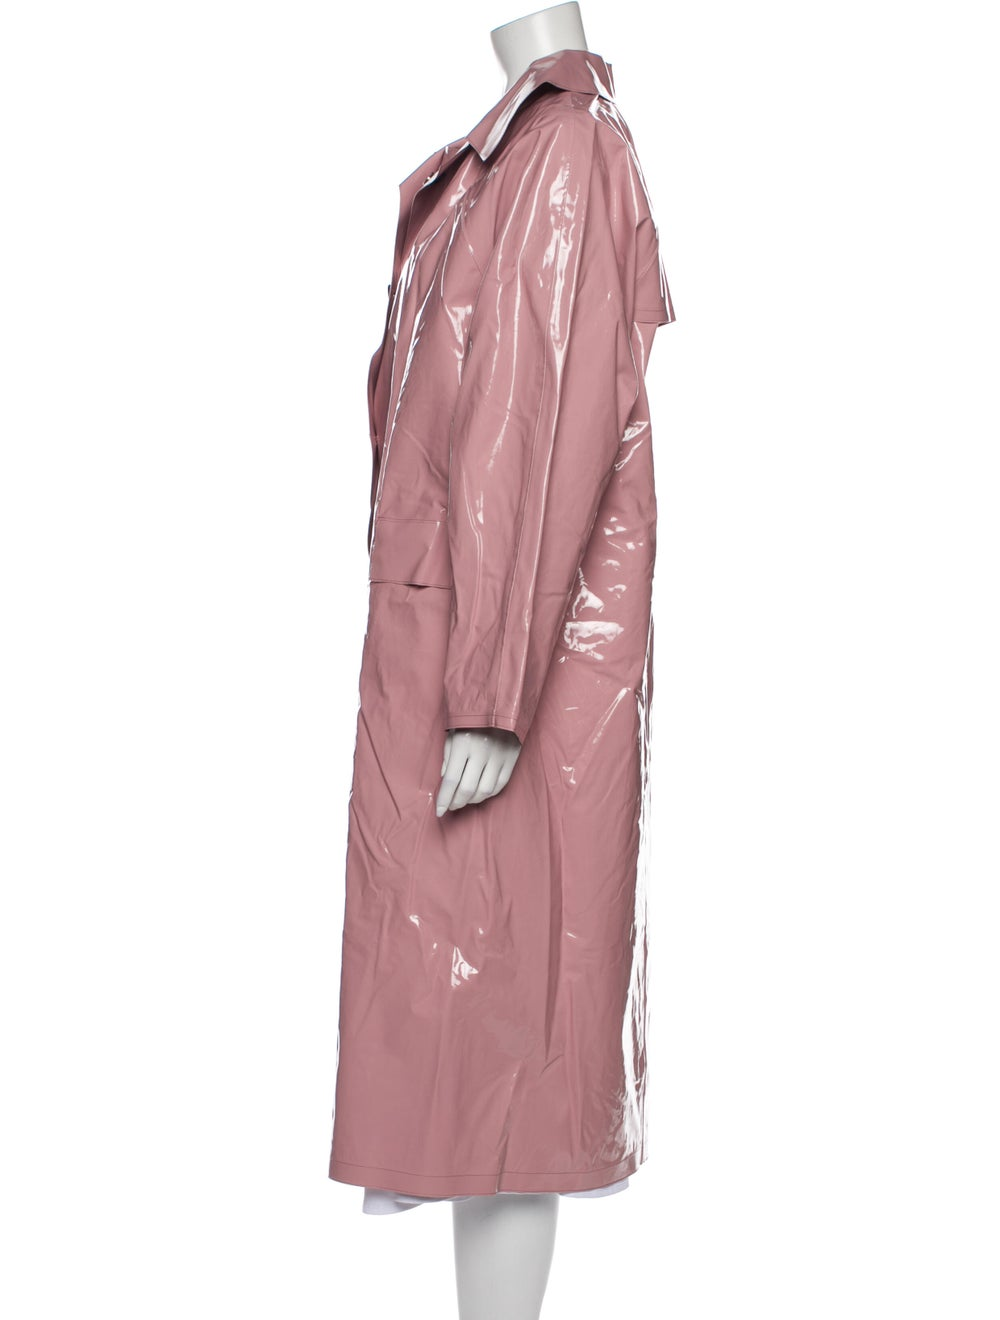 Kassl Trench Coat Pink - image 2